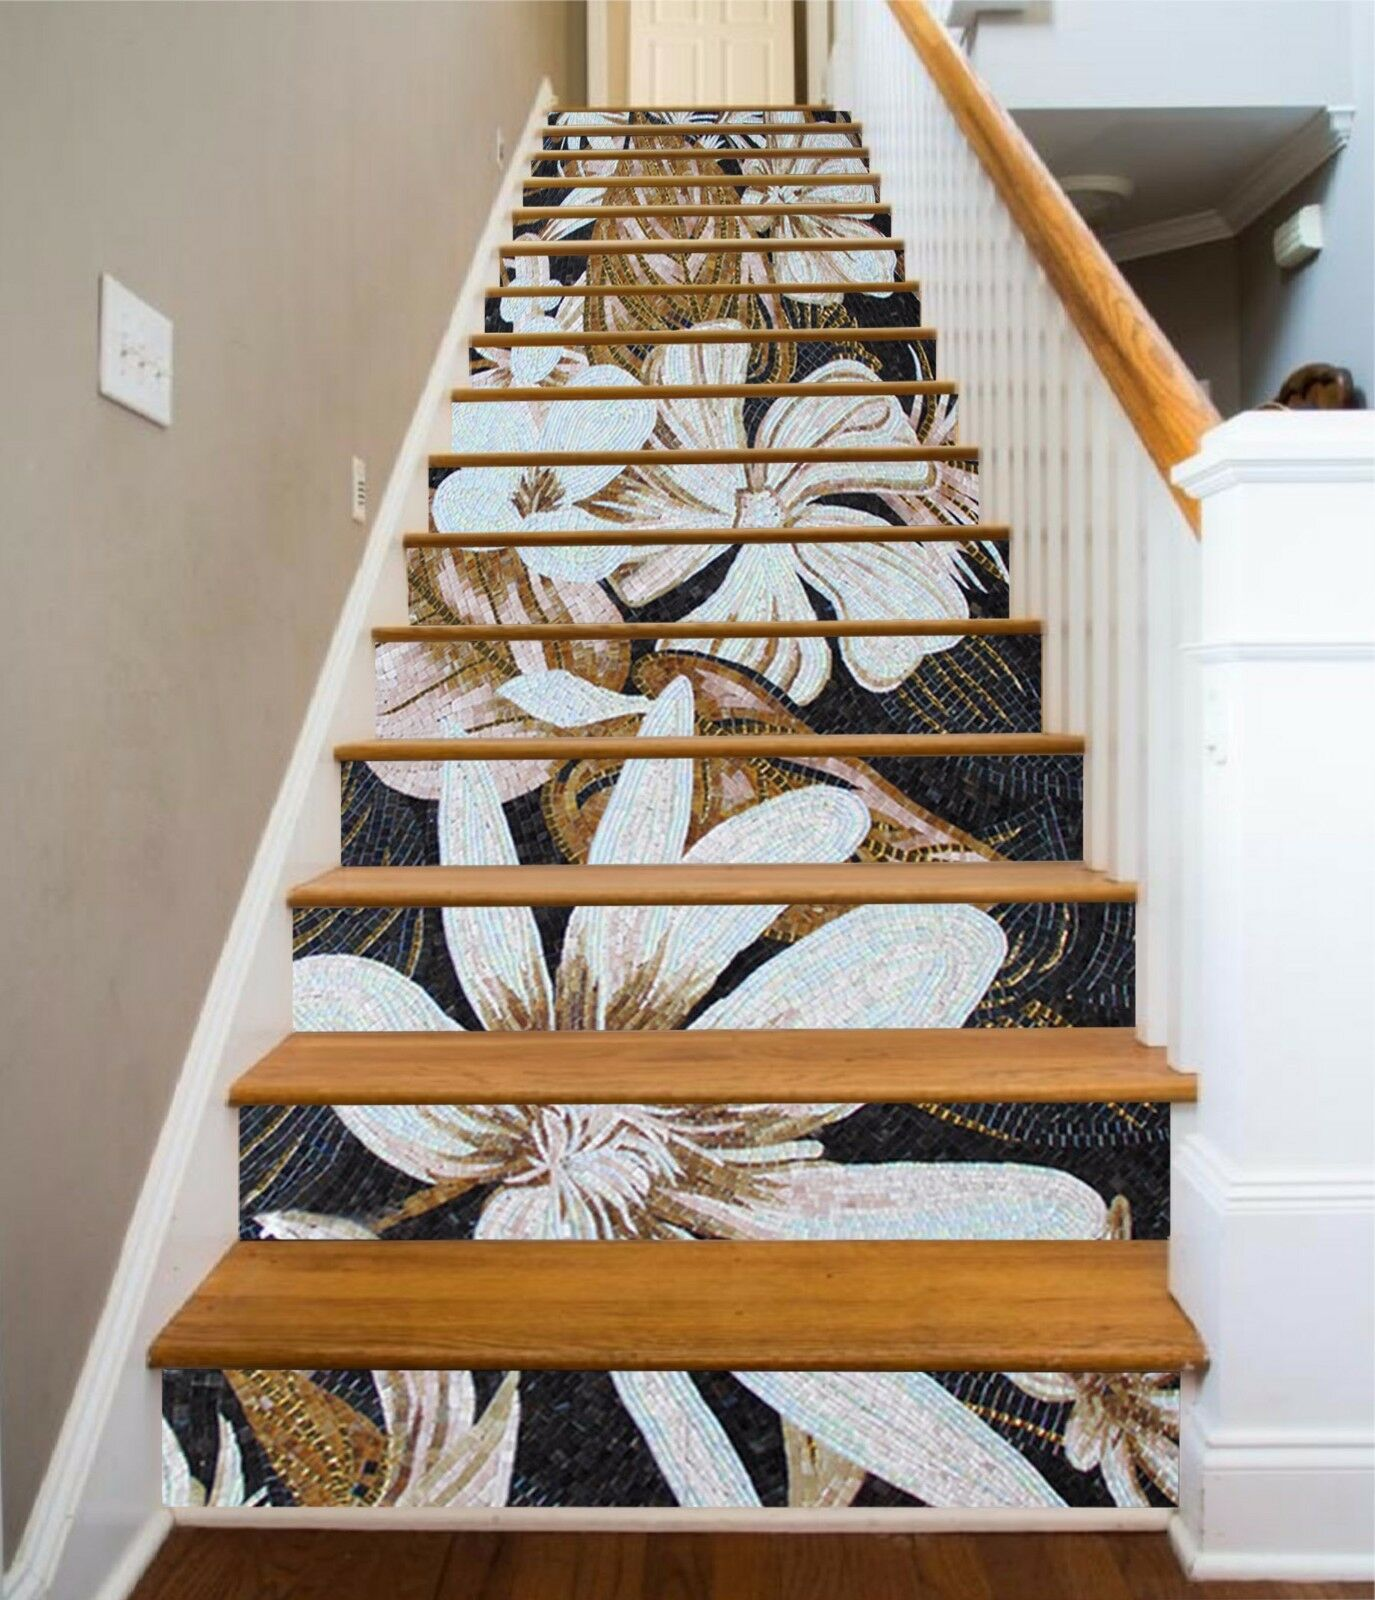 3D Metal Pattern 1 Stairs Risers Decoration Photo Mural Vinyl Decal WandPapier US